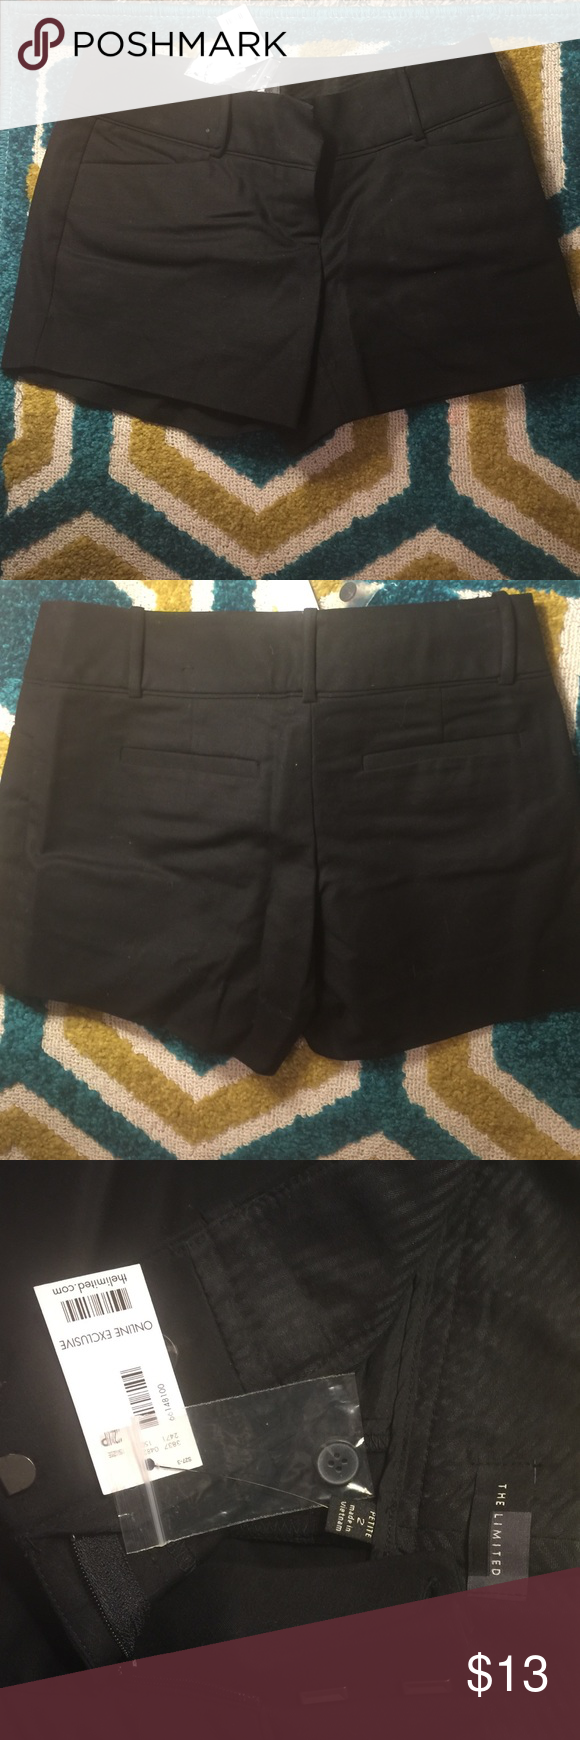 Black express dress shorts Petite! Never worn. Ordered online last fall but gained weight over winter. Online exclusive The Limited Shorts